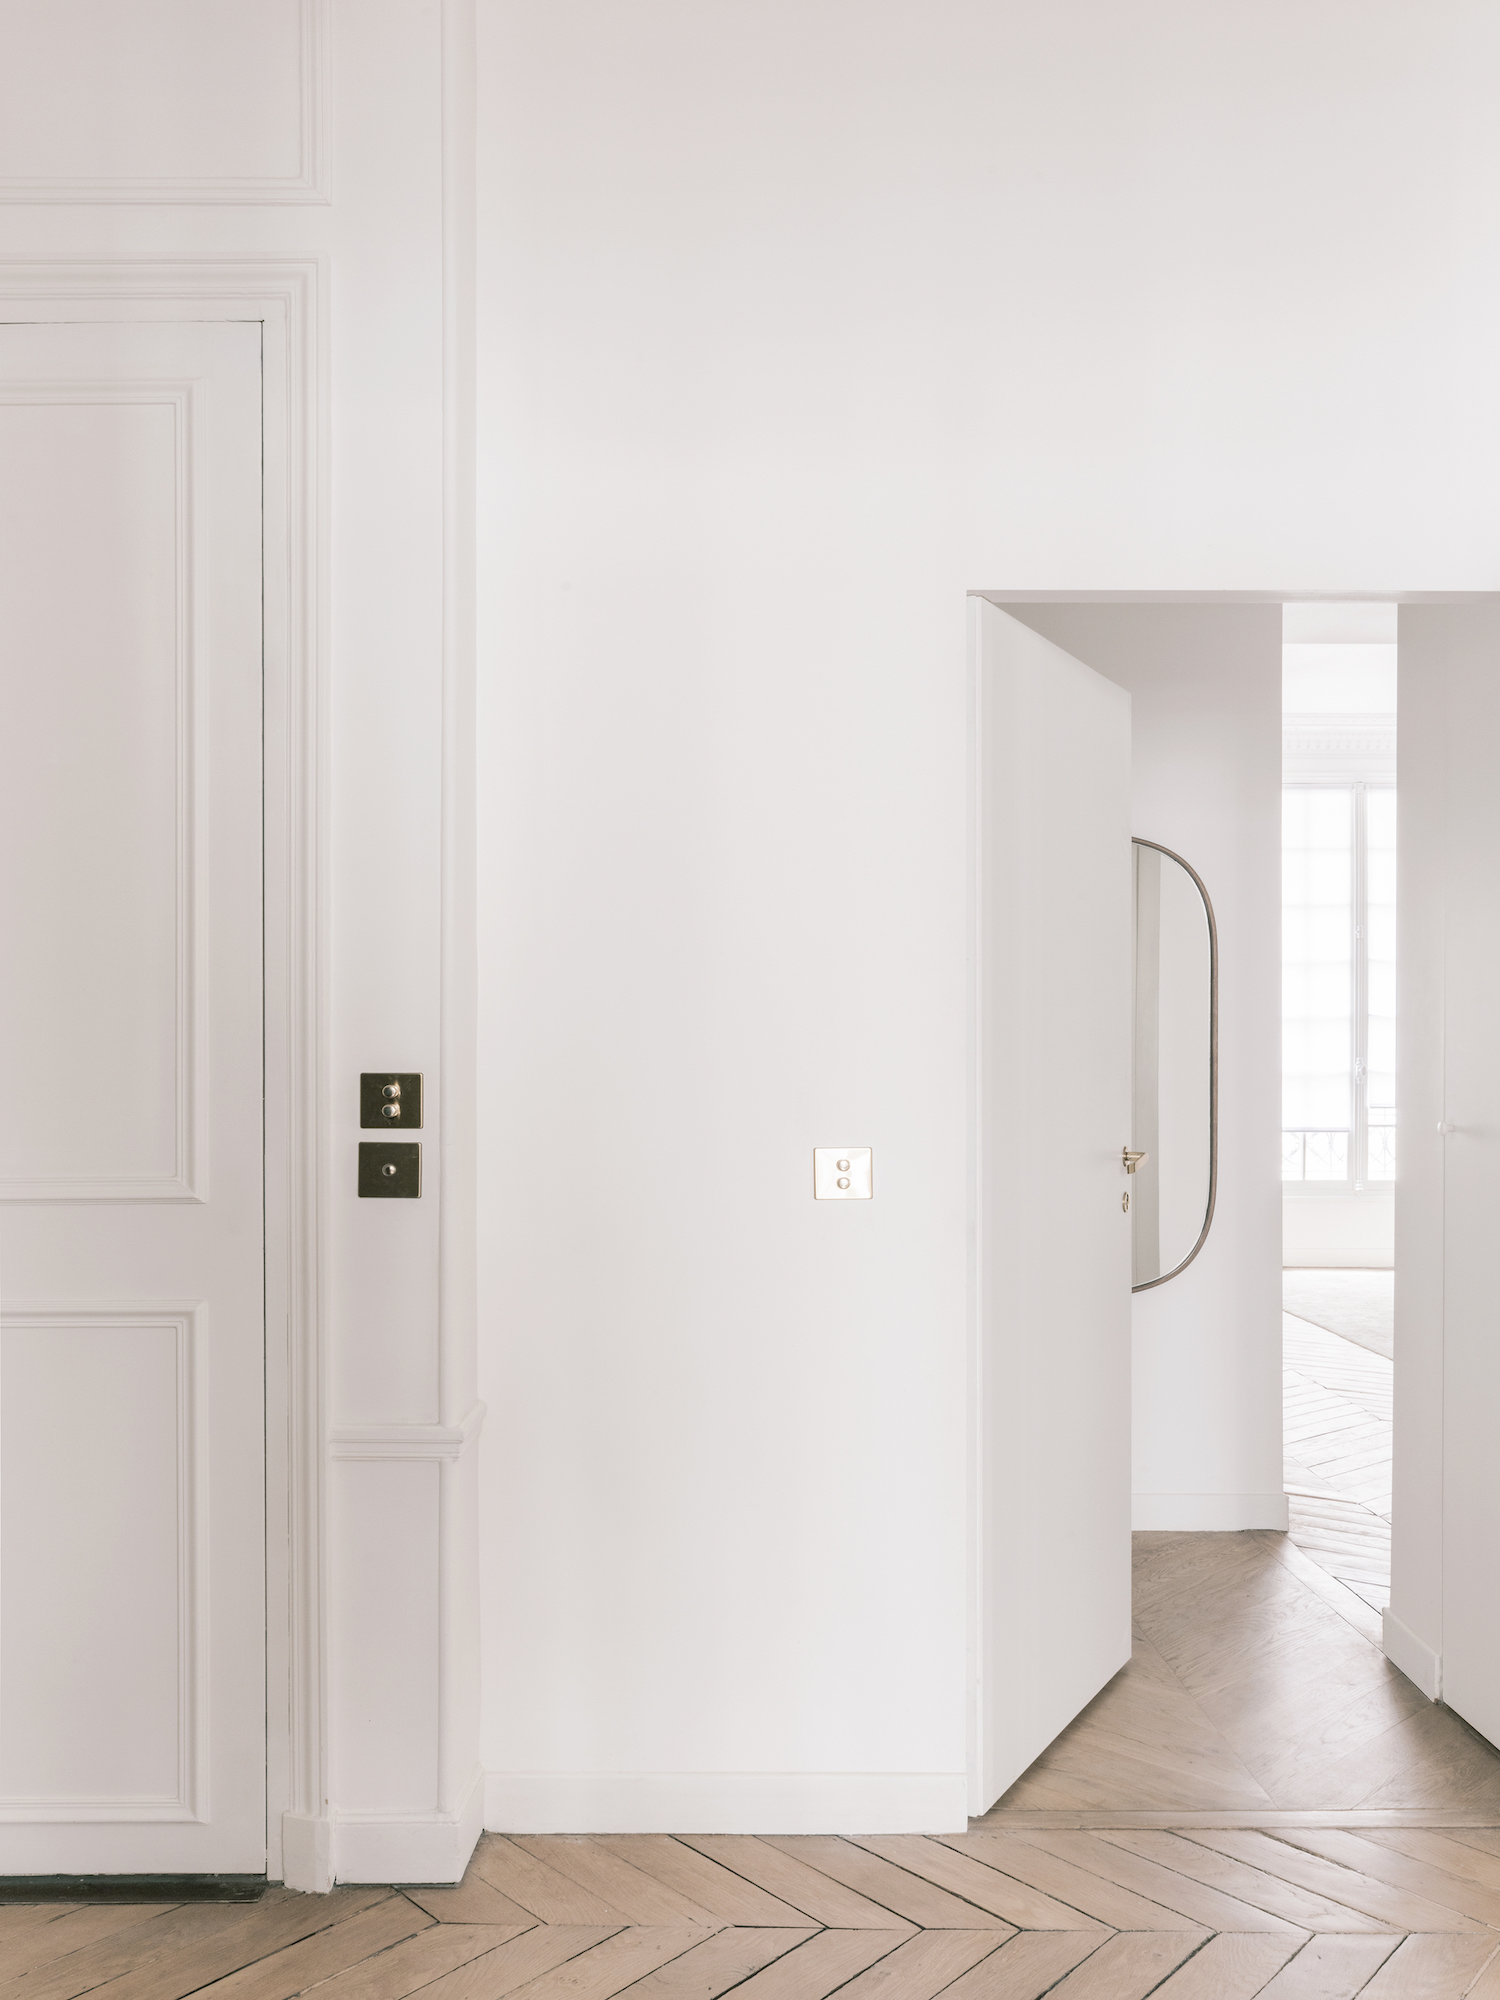 est living chaptal apartment nathalie eldan architecture 01